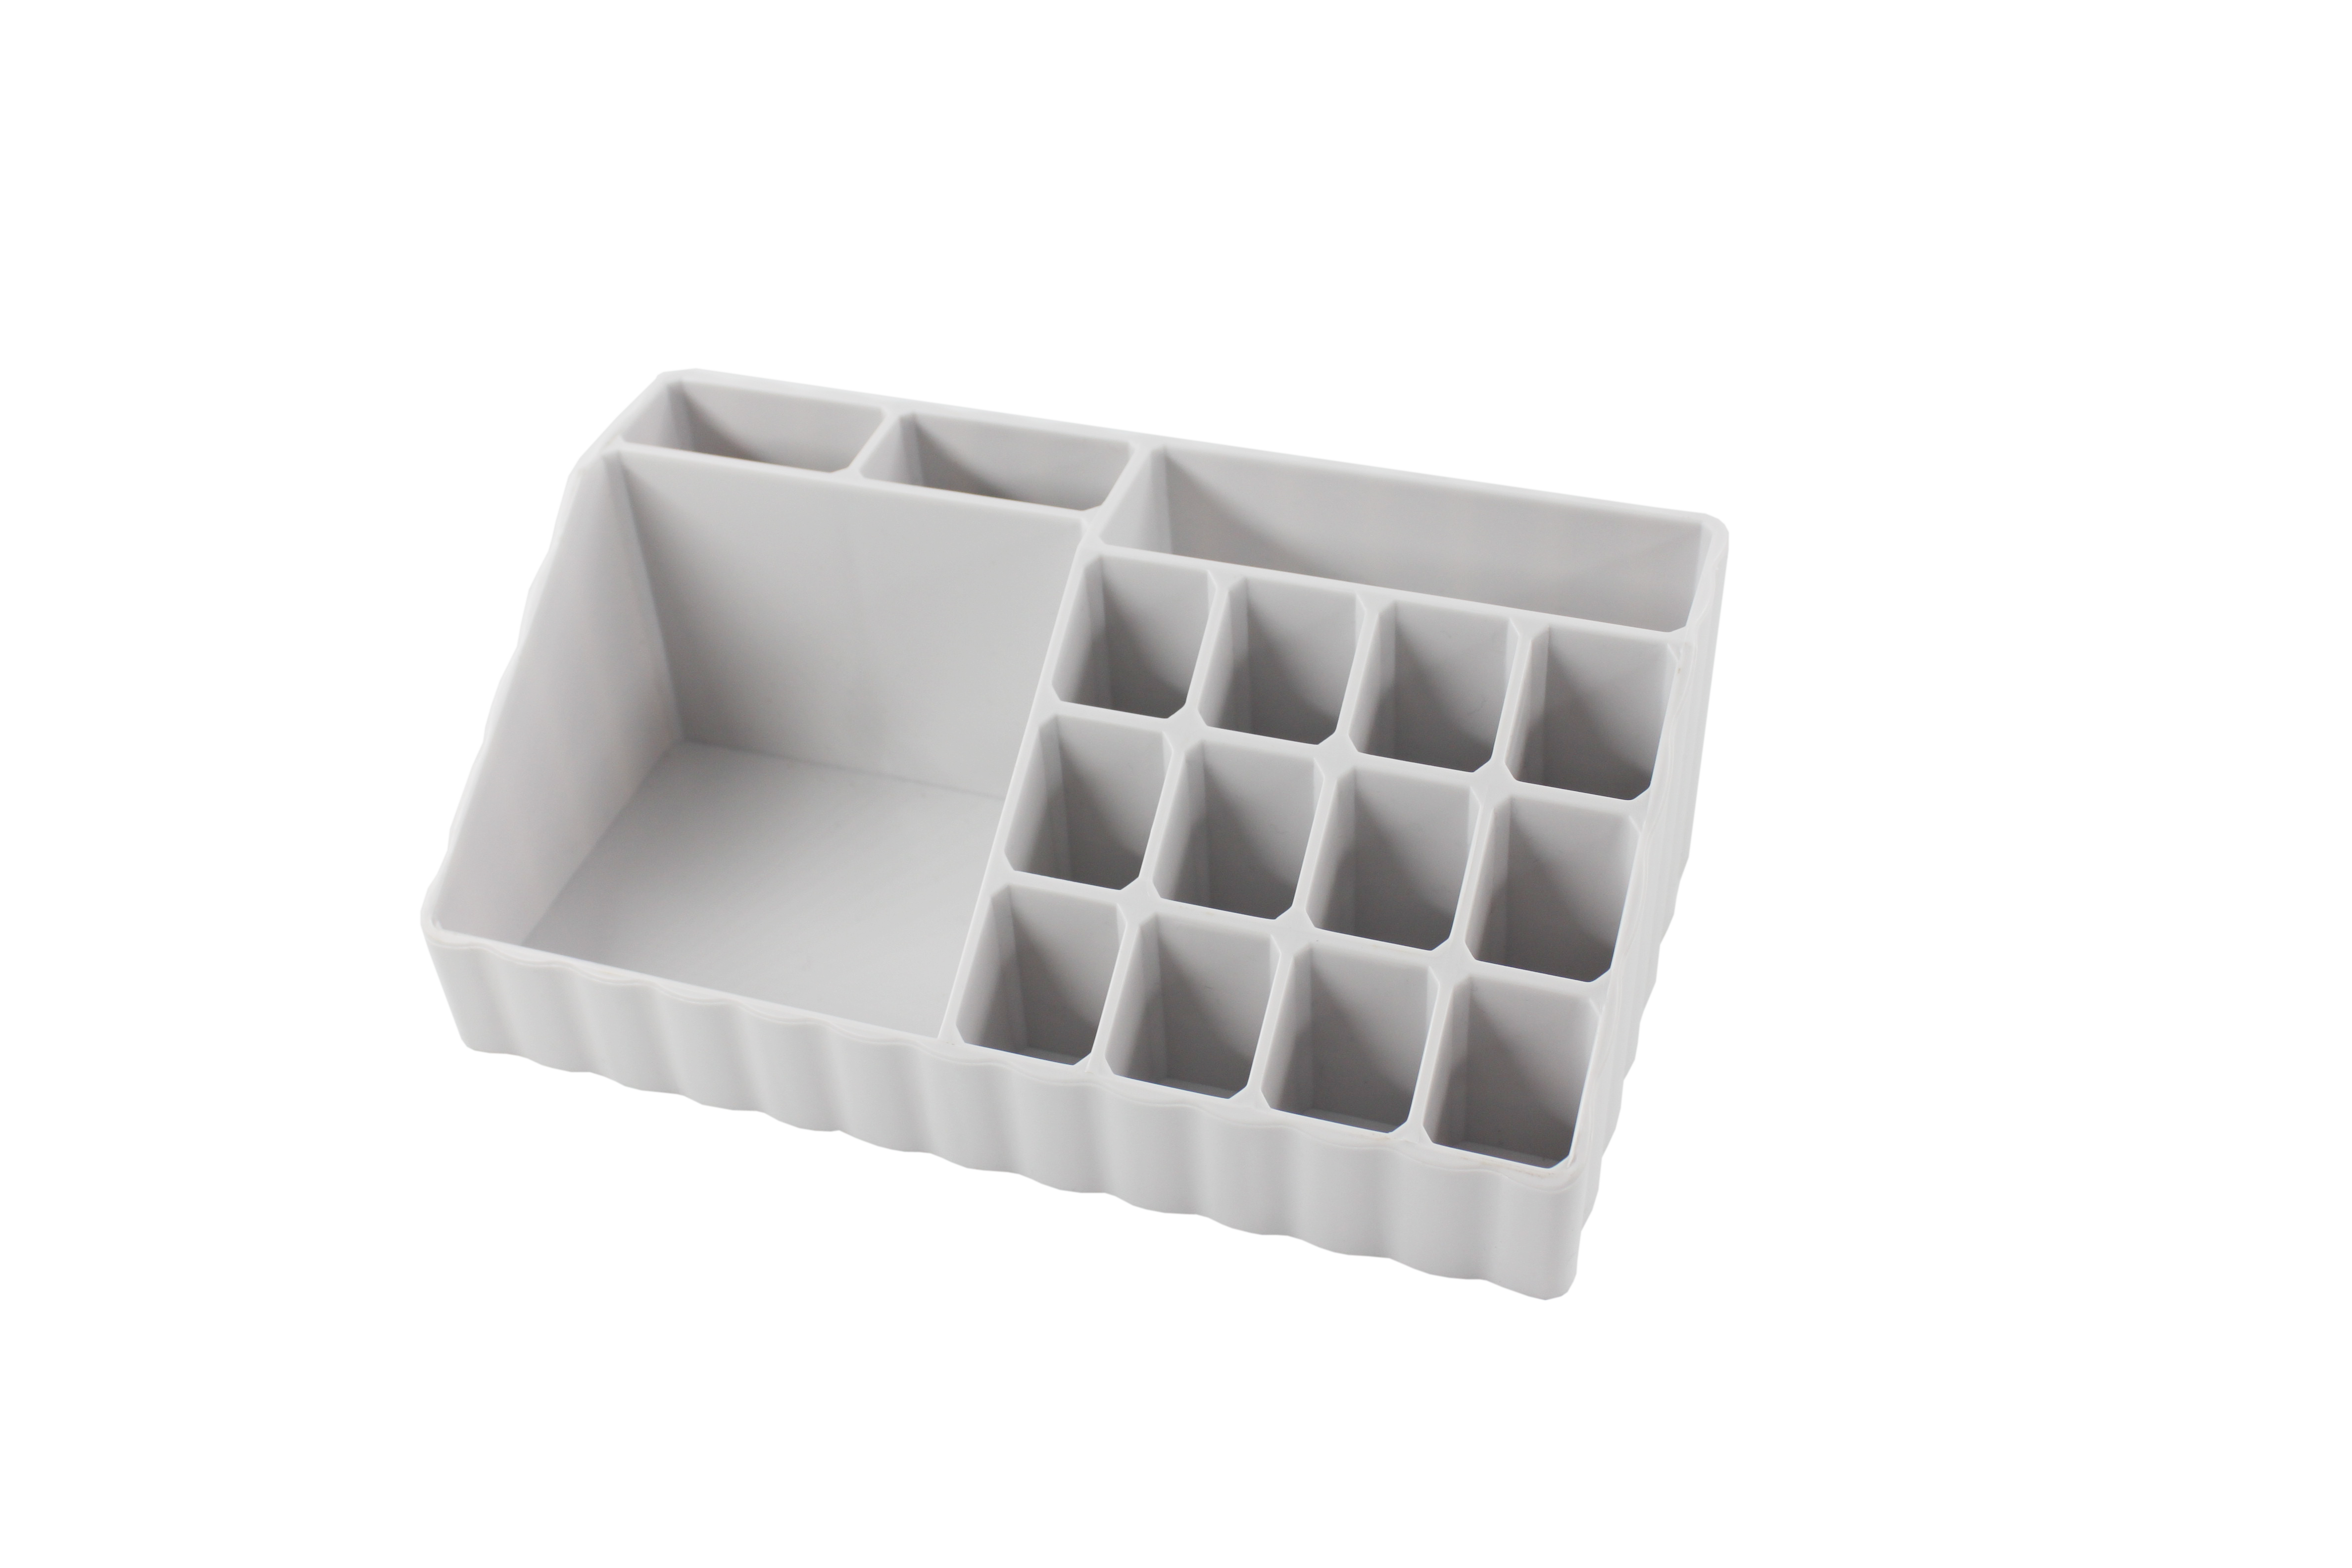 2019 Chinese Supplier High Quality Plastic AS Makeup Storage Box